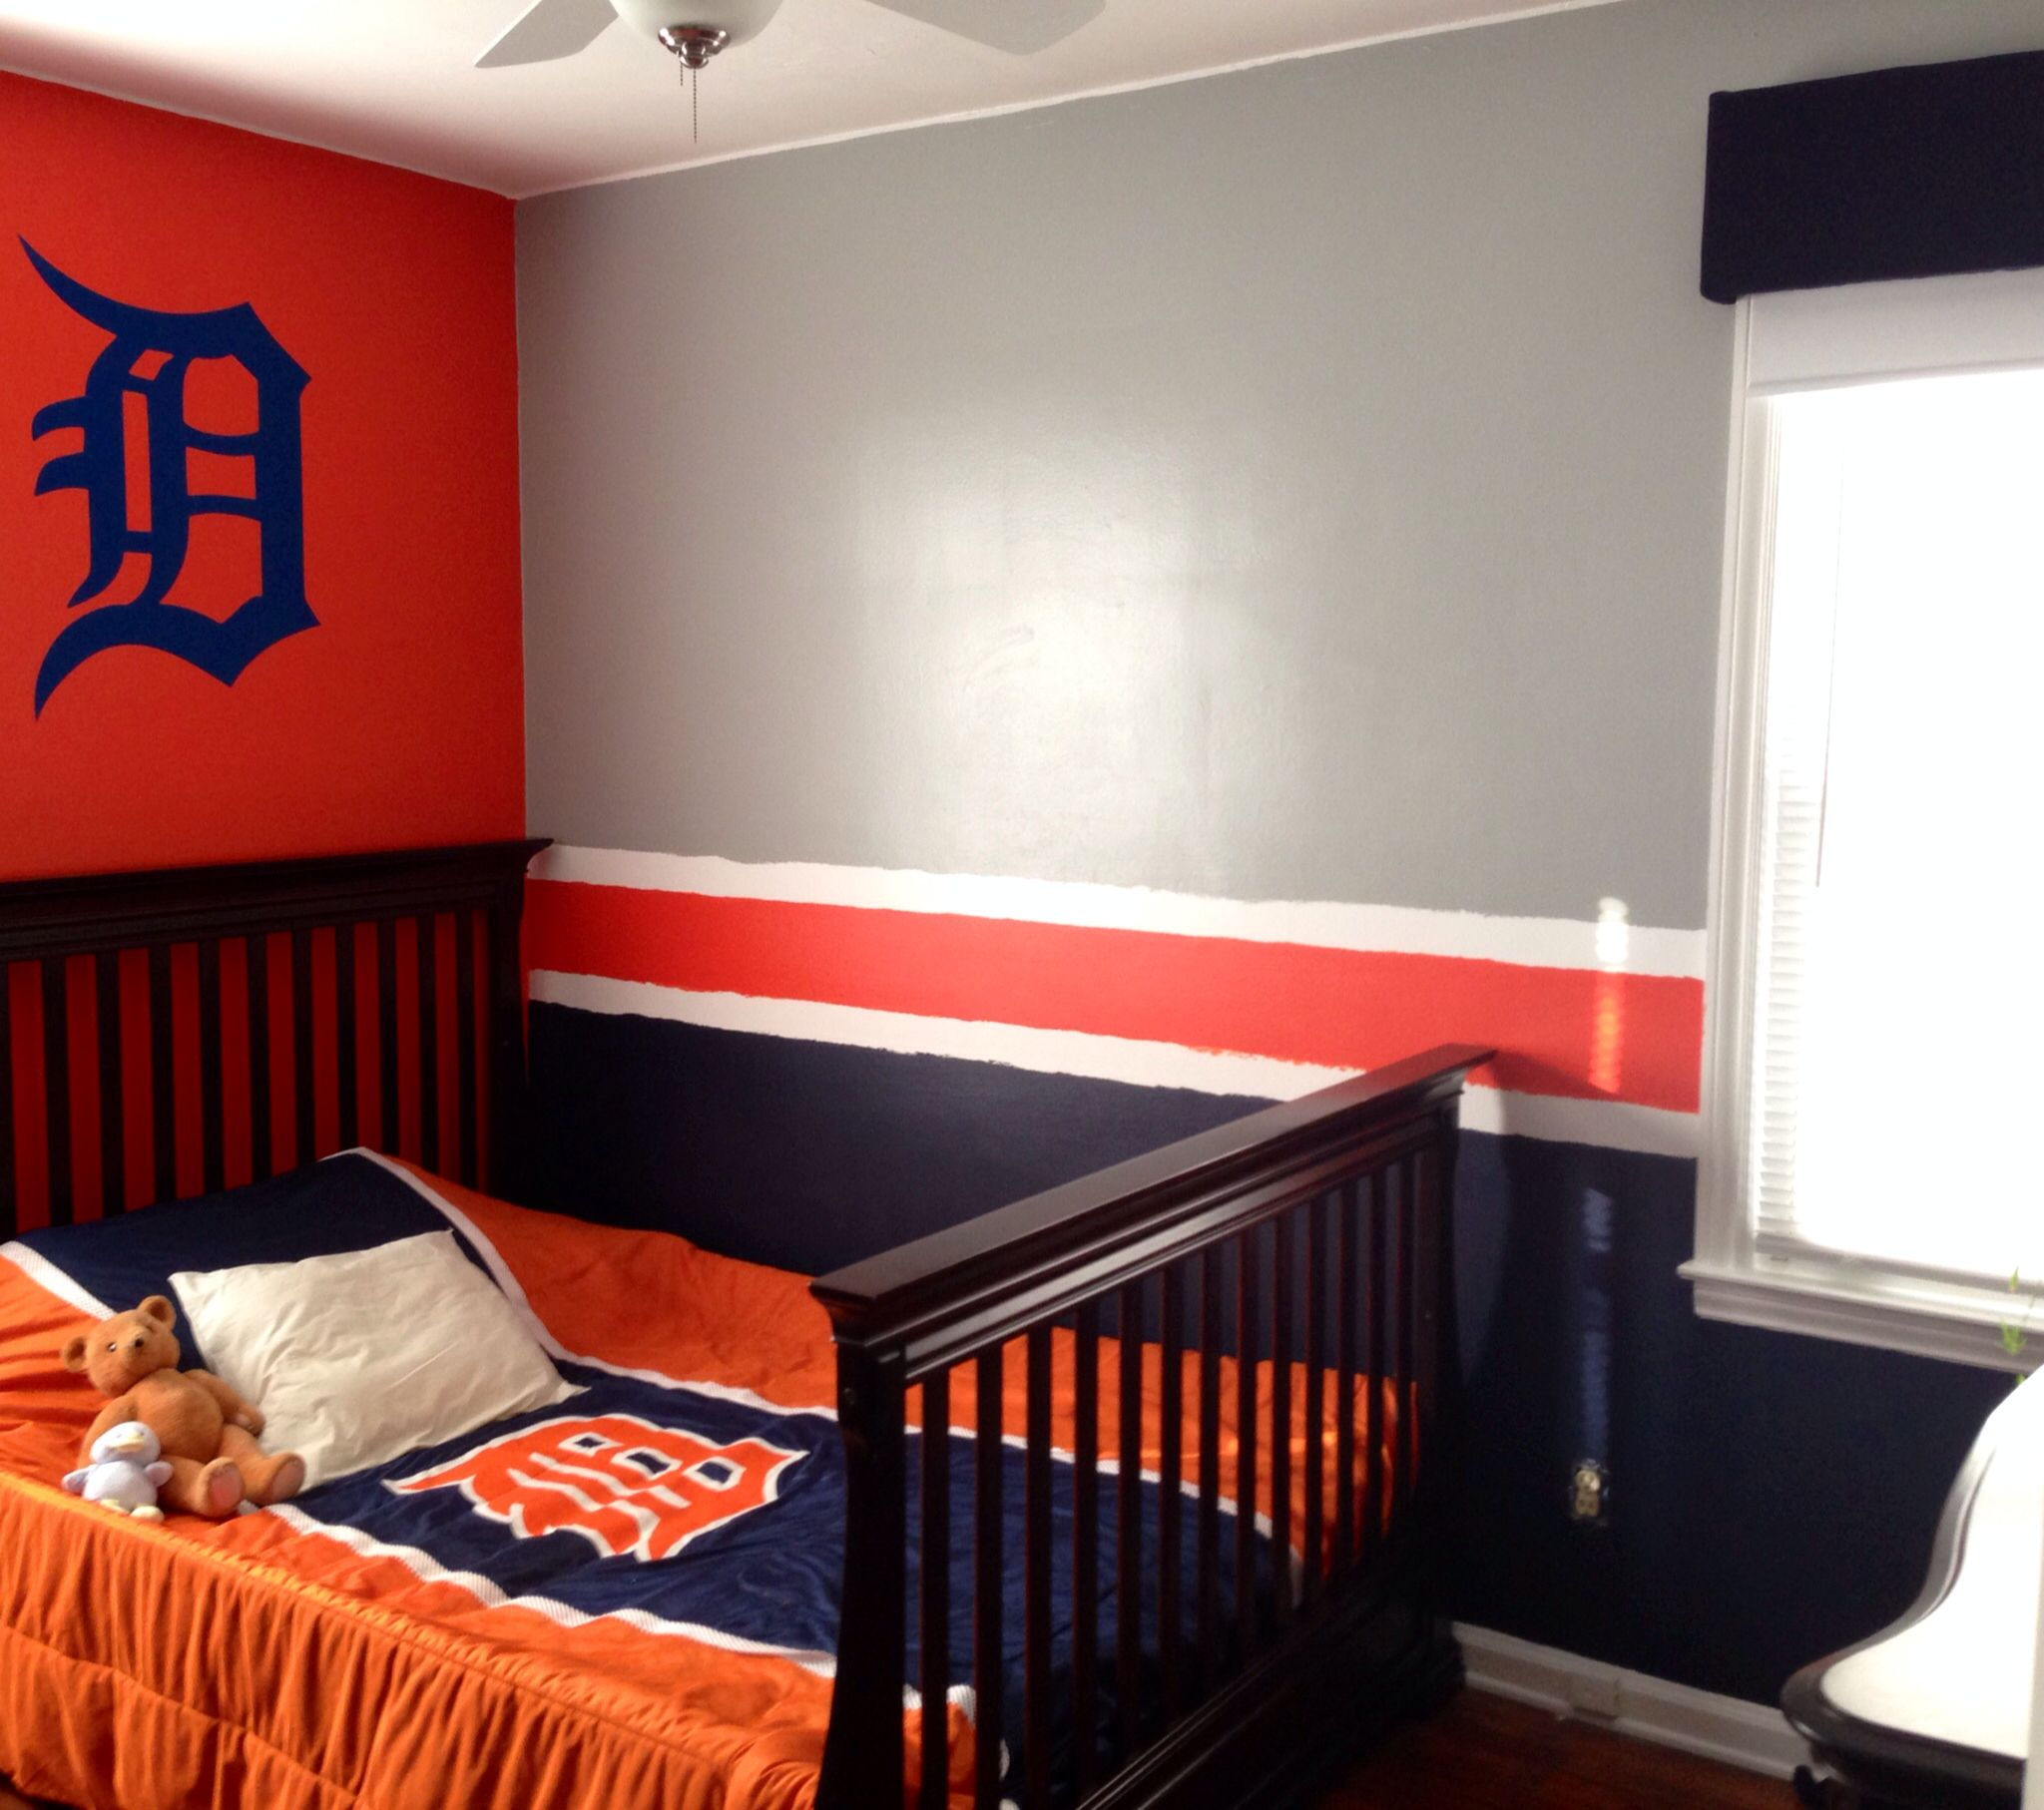 Detroit Tigers Baseball Bedroom Boy s Room with Detroit Old English D created by N A G Kreationz